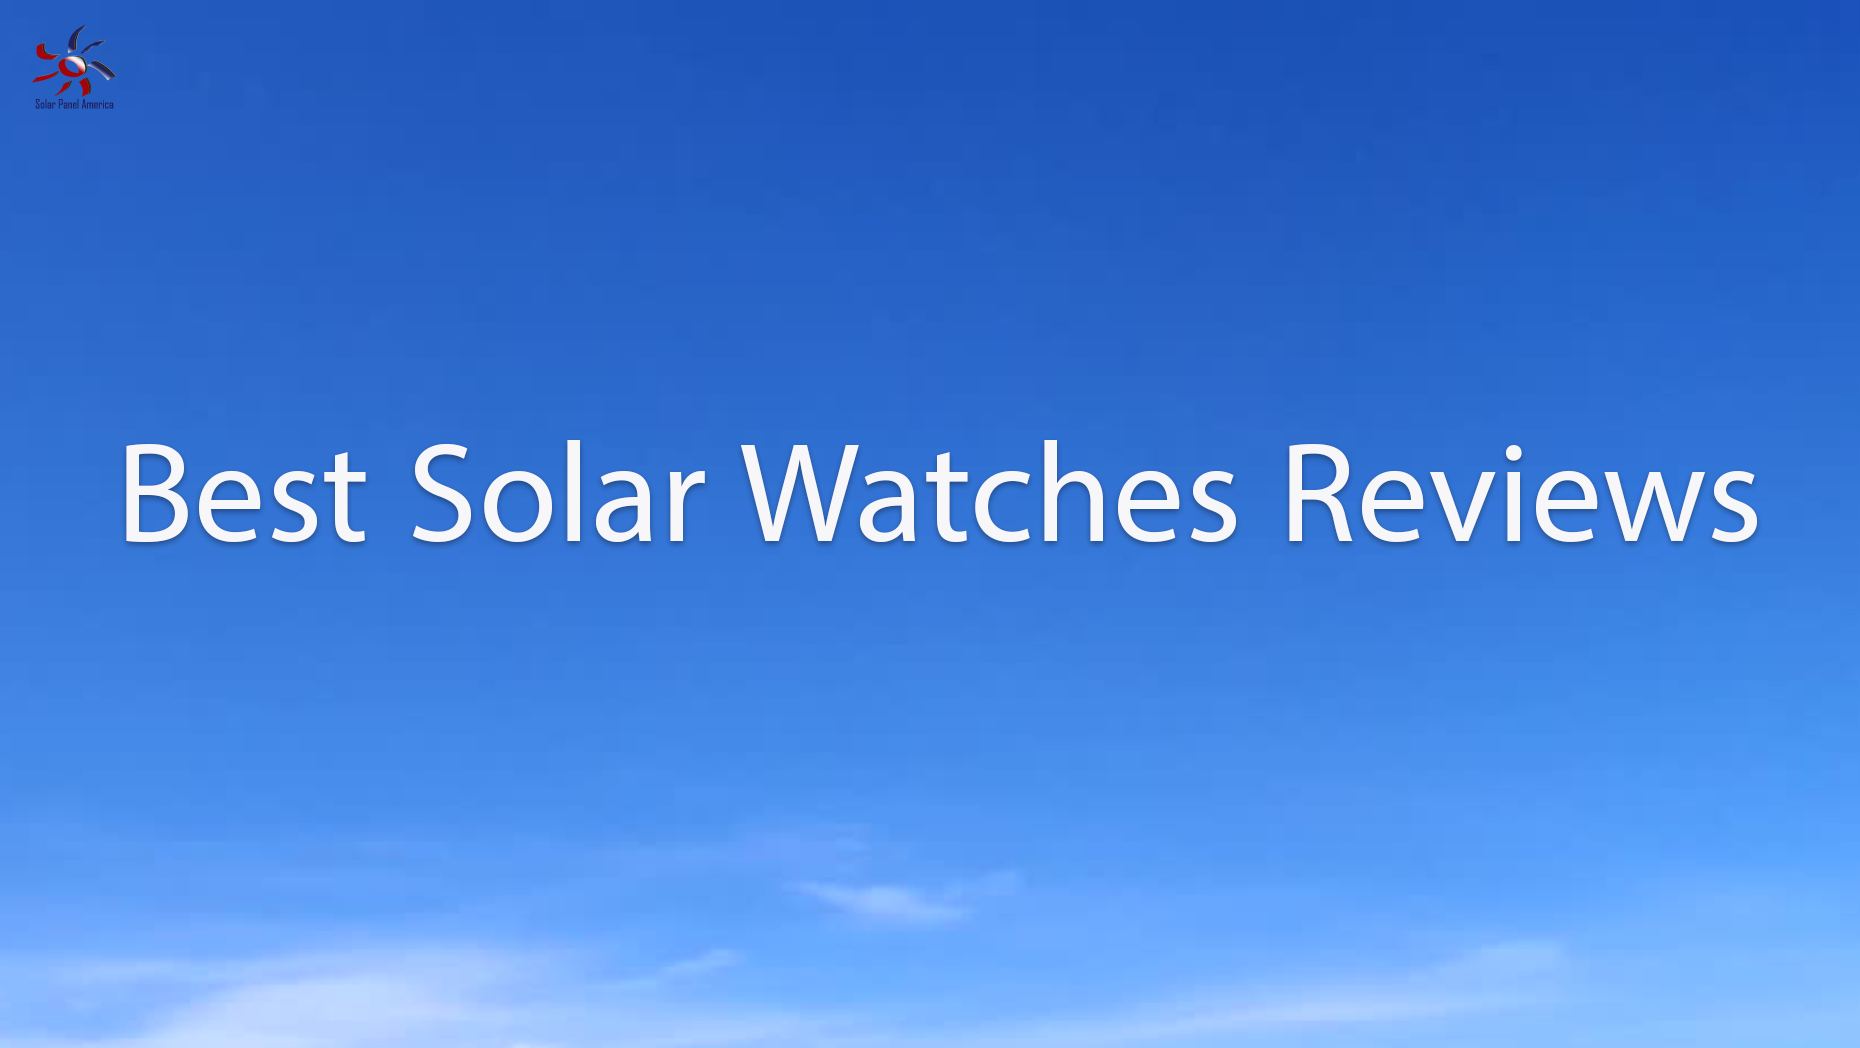 Best Solar Watches Reviews